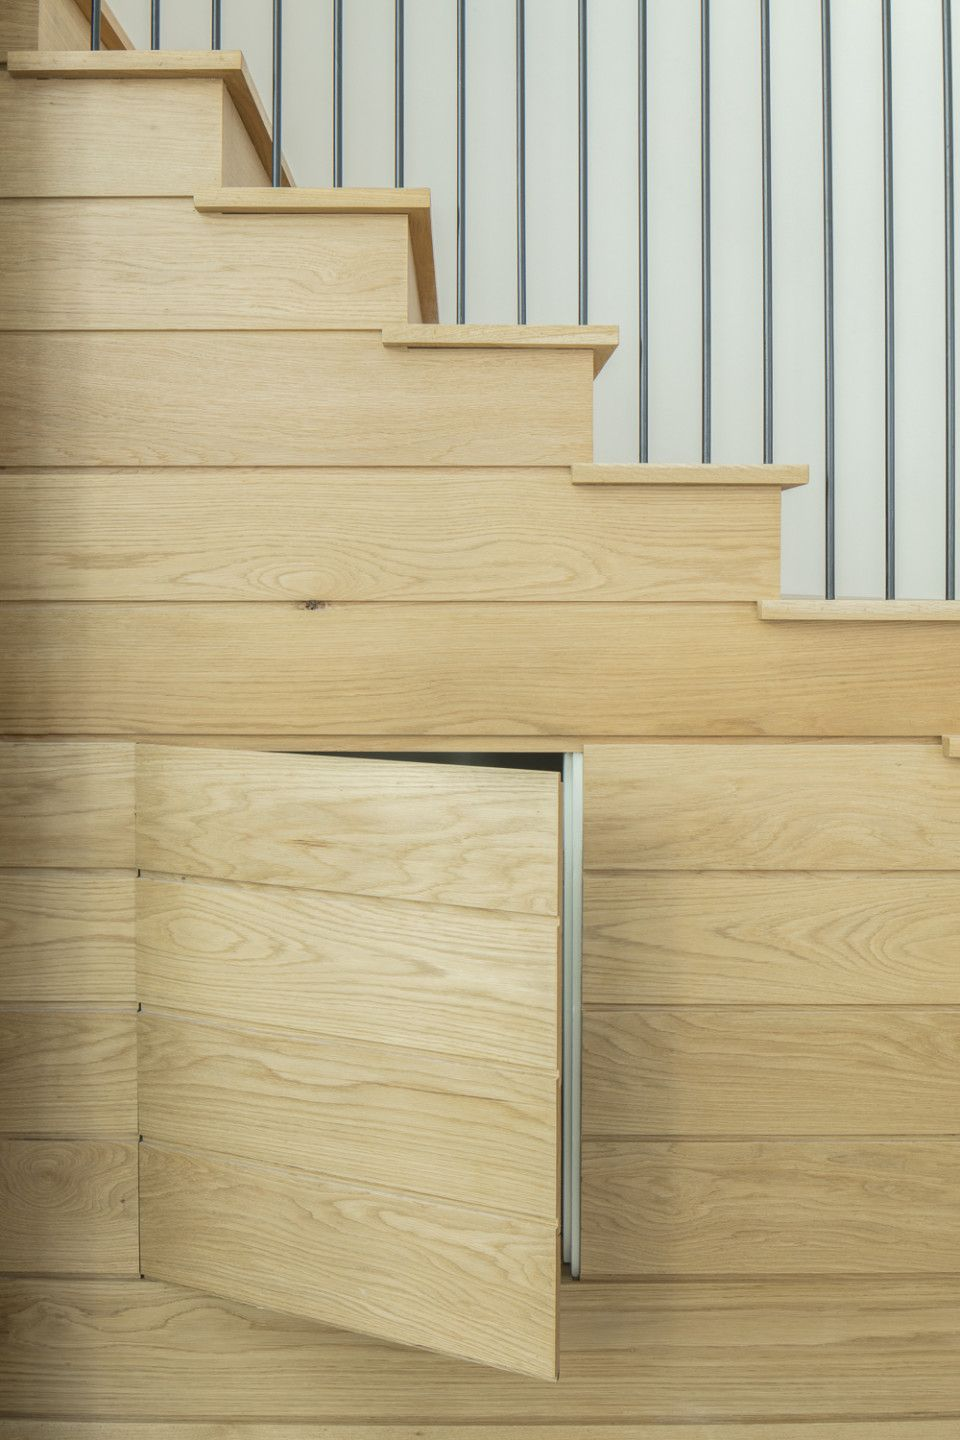 wood reveal wall | Stairs | Pinterest | Woods, Walls and Architects